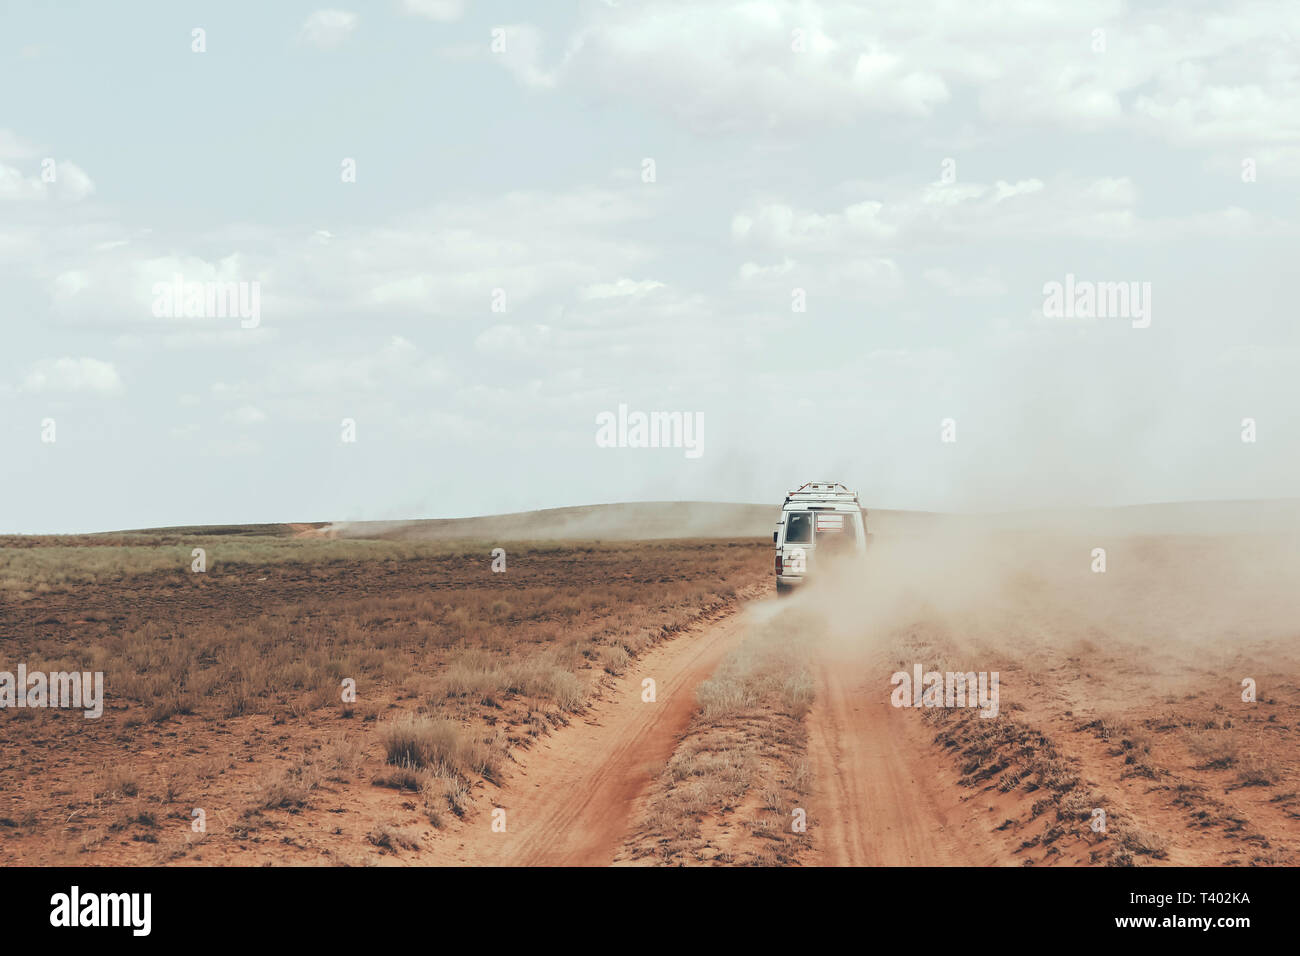 Desert Car Travel, Modern Lifestyle, Passion for Travel, drive in Search of Adventure and Risk - Stock Image